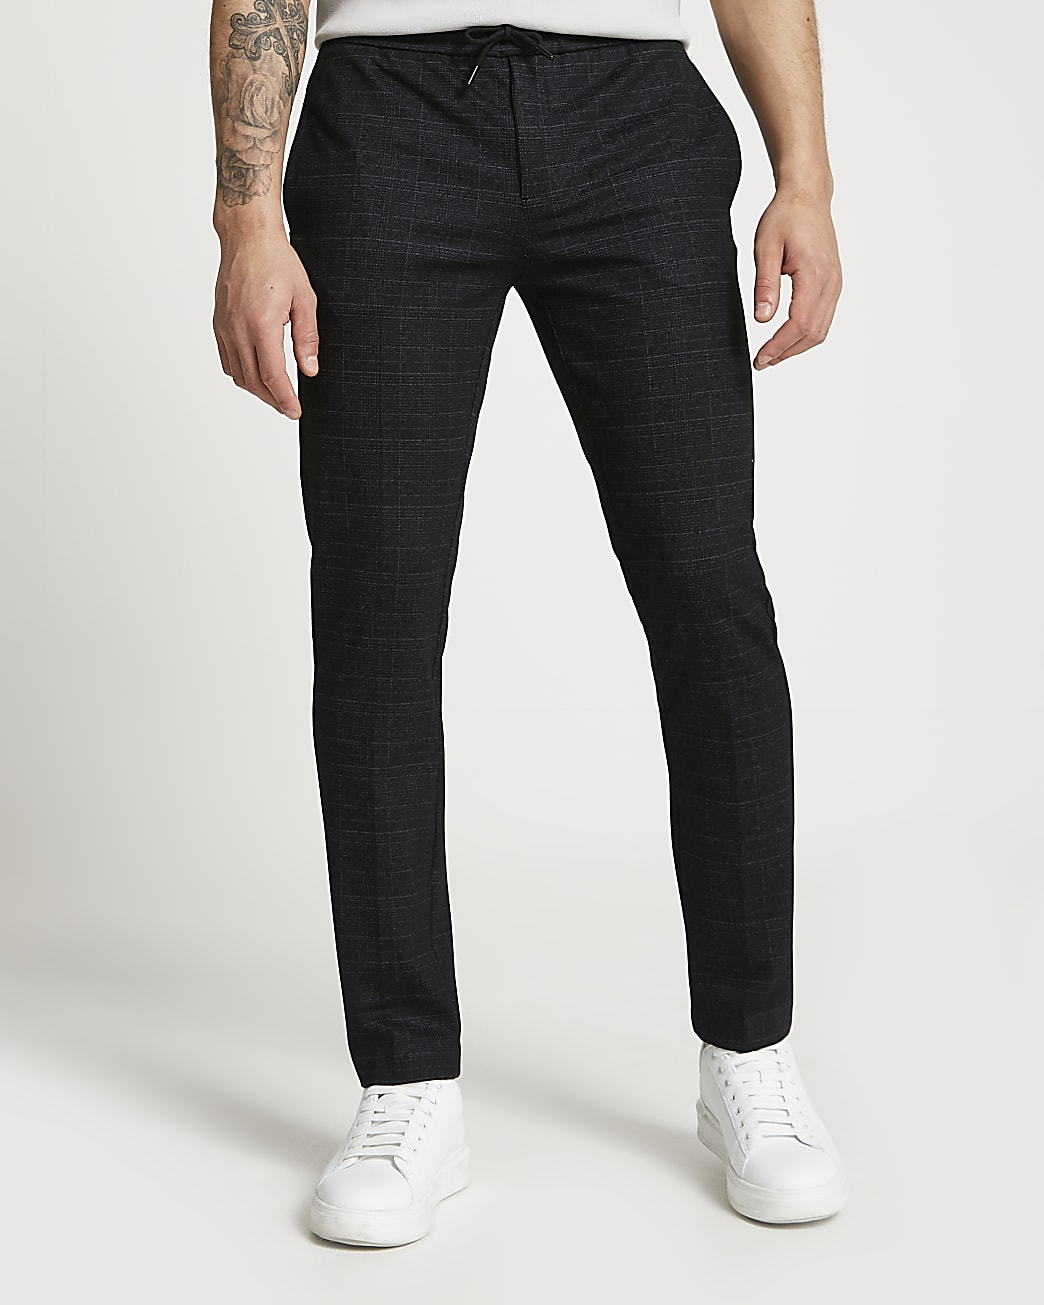 Navy jersey speckled check smart joggers